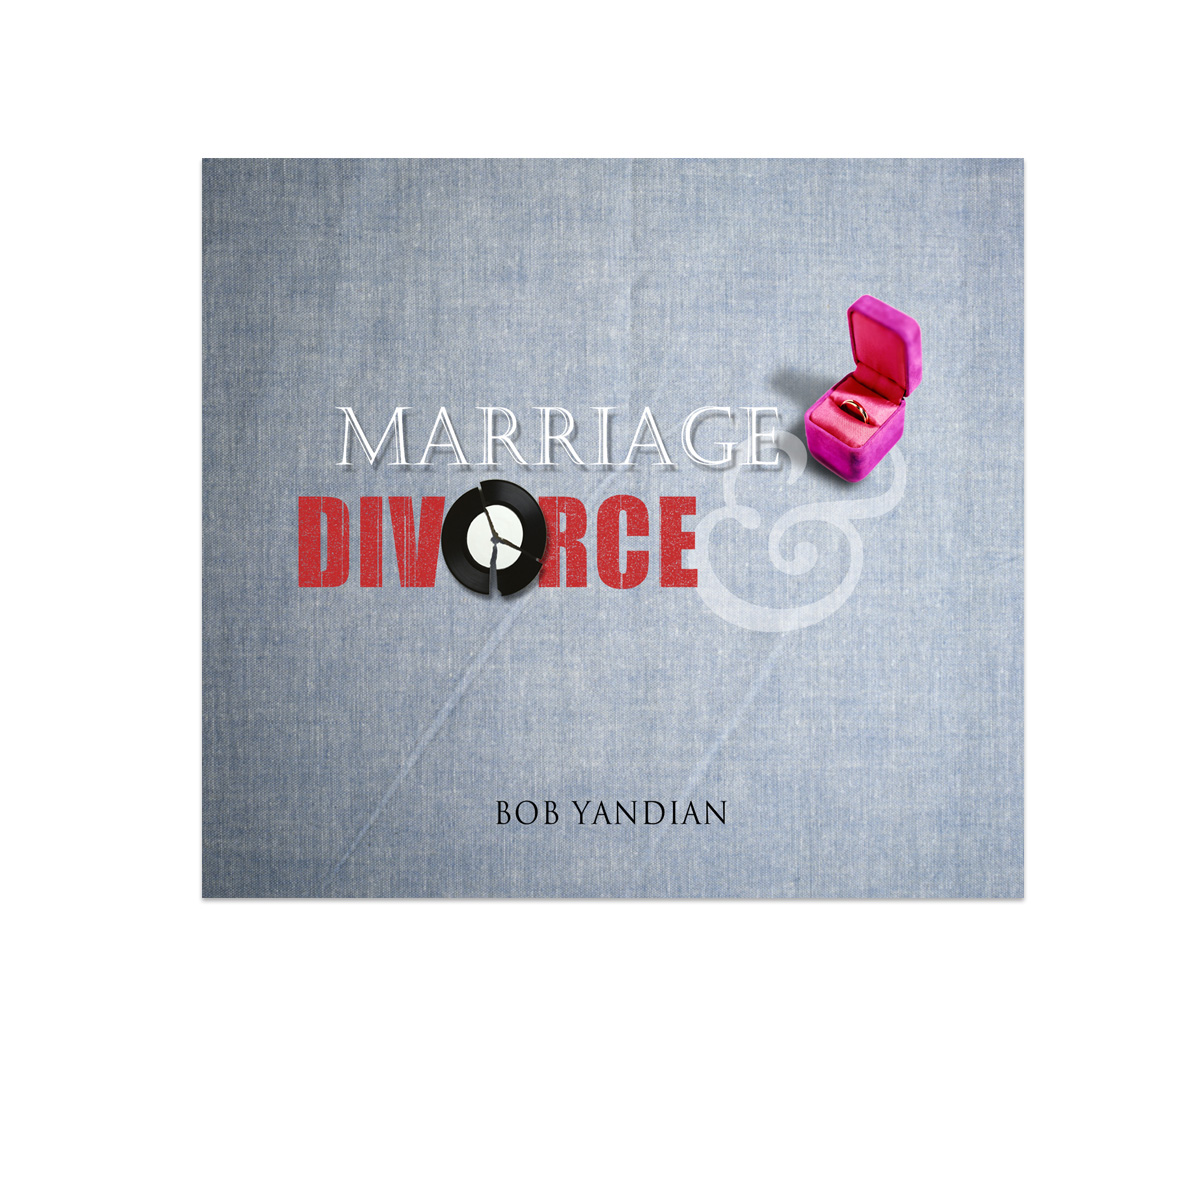 Marriage and Divorce (MP3s) — Bob Yandian Ministries